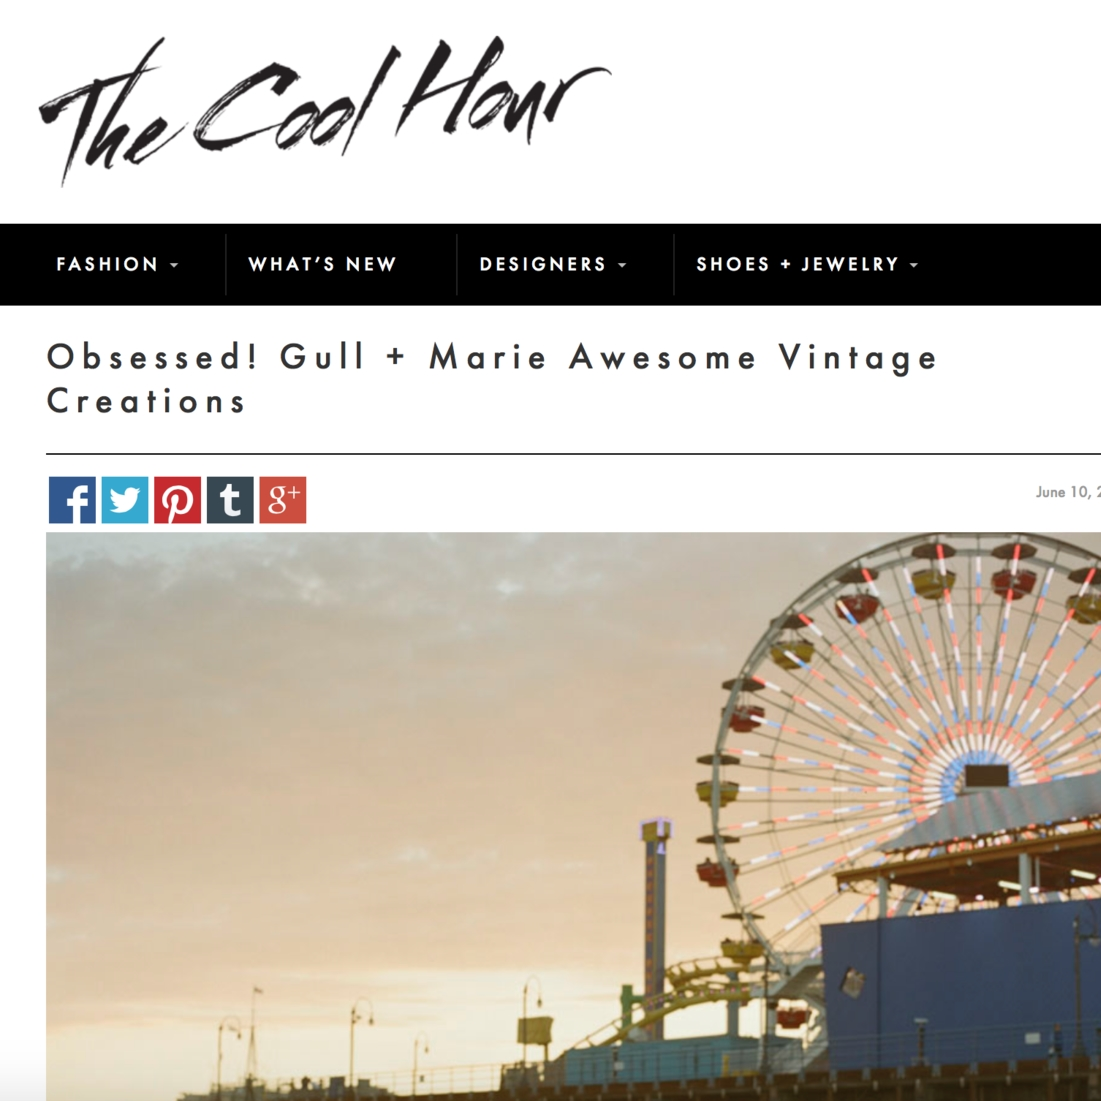 The Cool Hour -